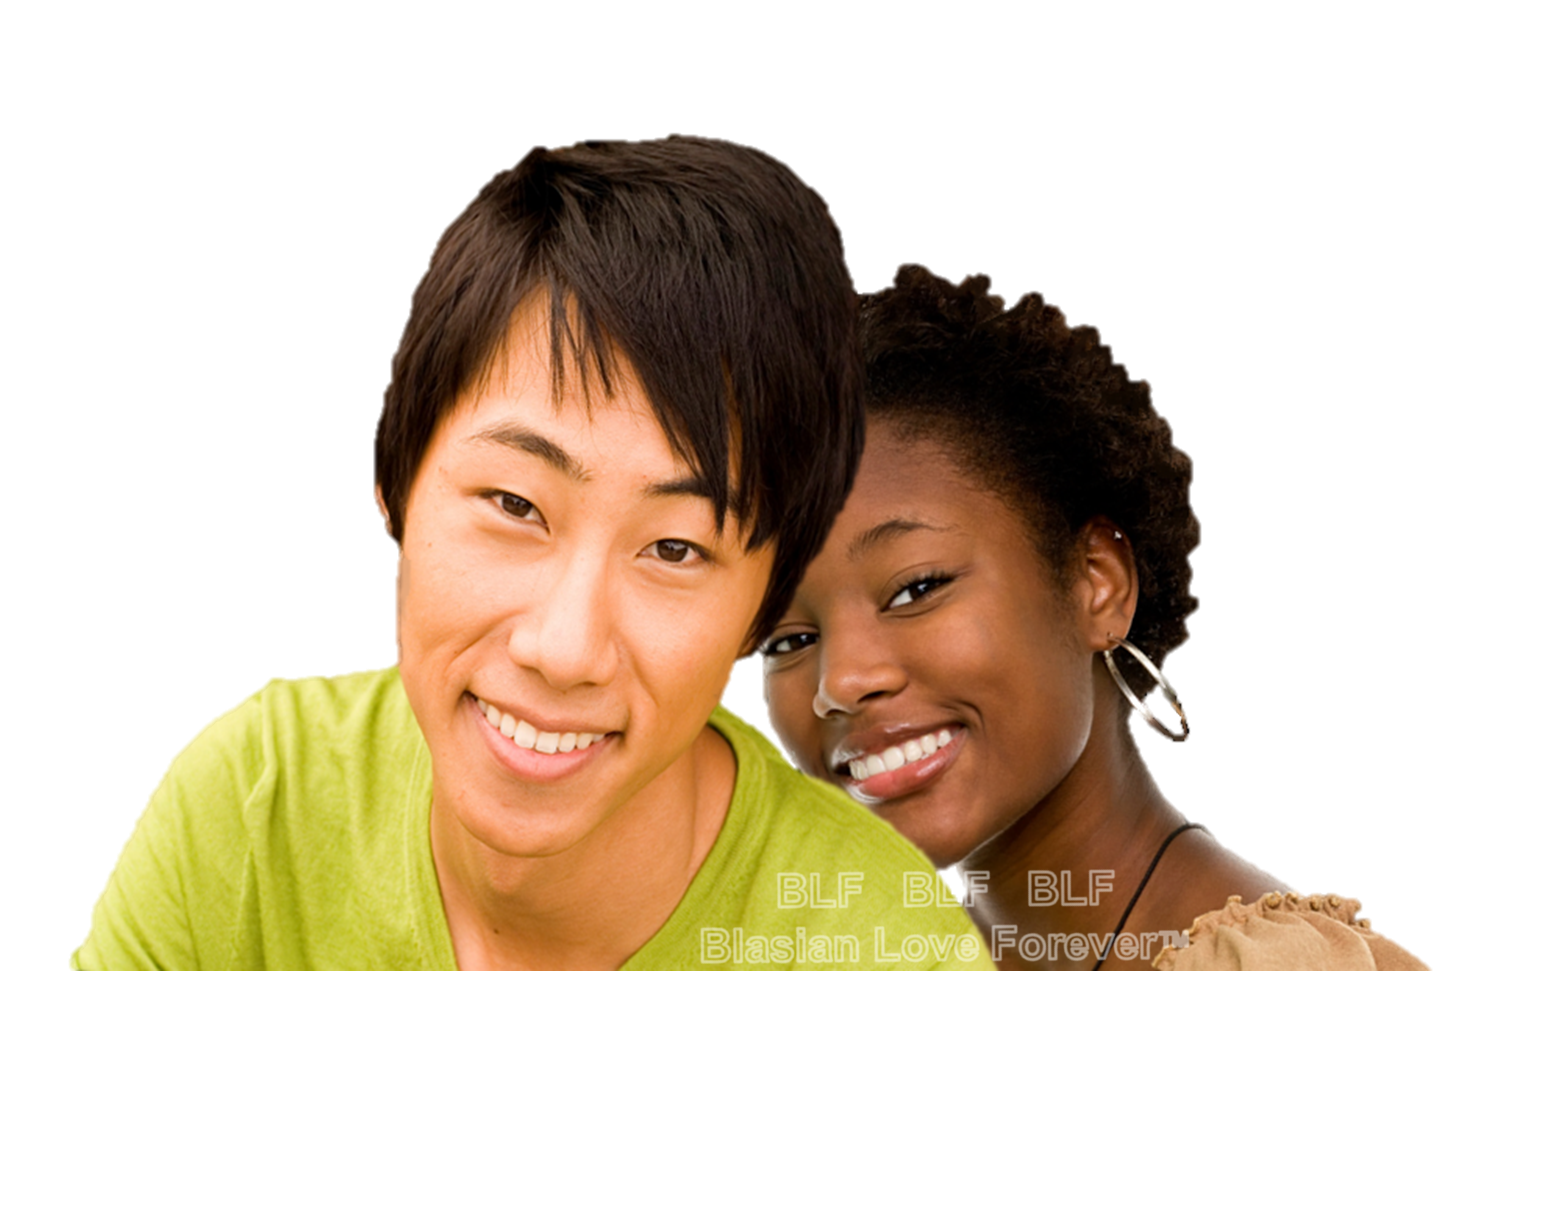 Ambw free dating sites